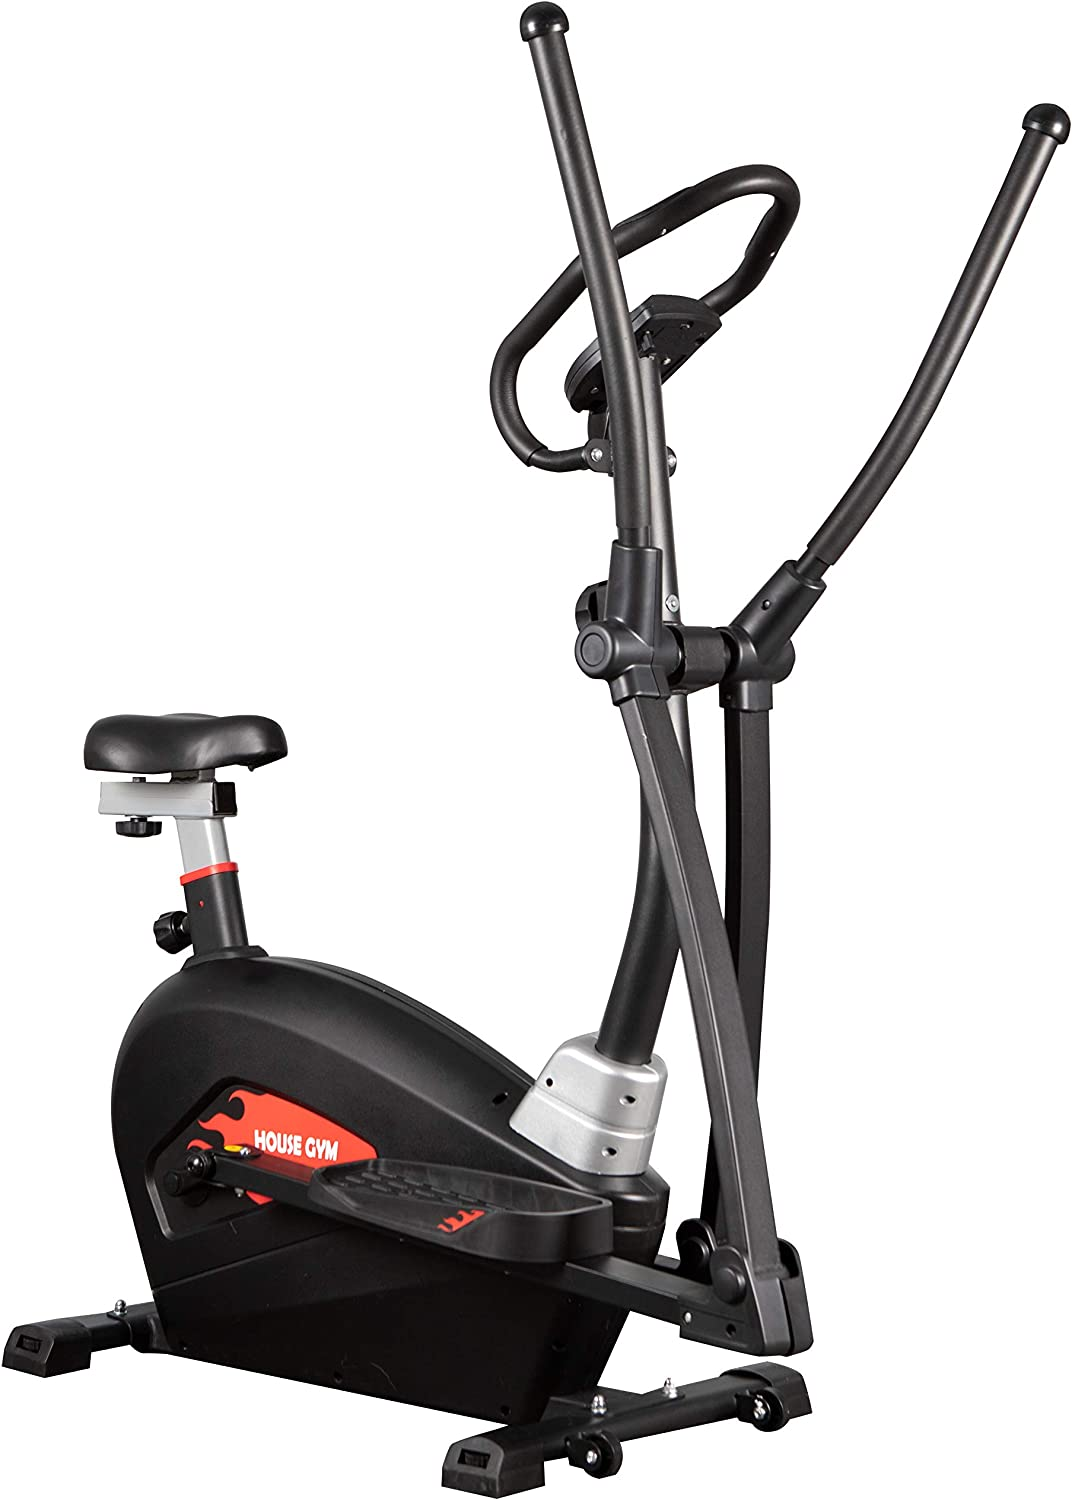 LCD Display KASMET Cross Trainer Cardio Workout Indoor Fitness Magnetic Resistance 16 Levels Elliptical Machine Exercise Equipment For Home Use With Bike Seat Pulse Heart Rate Monitor